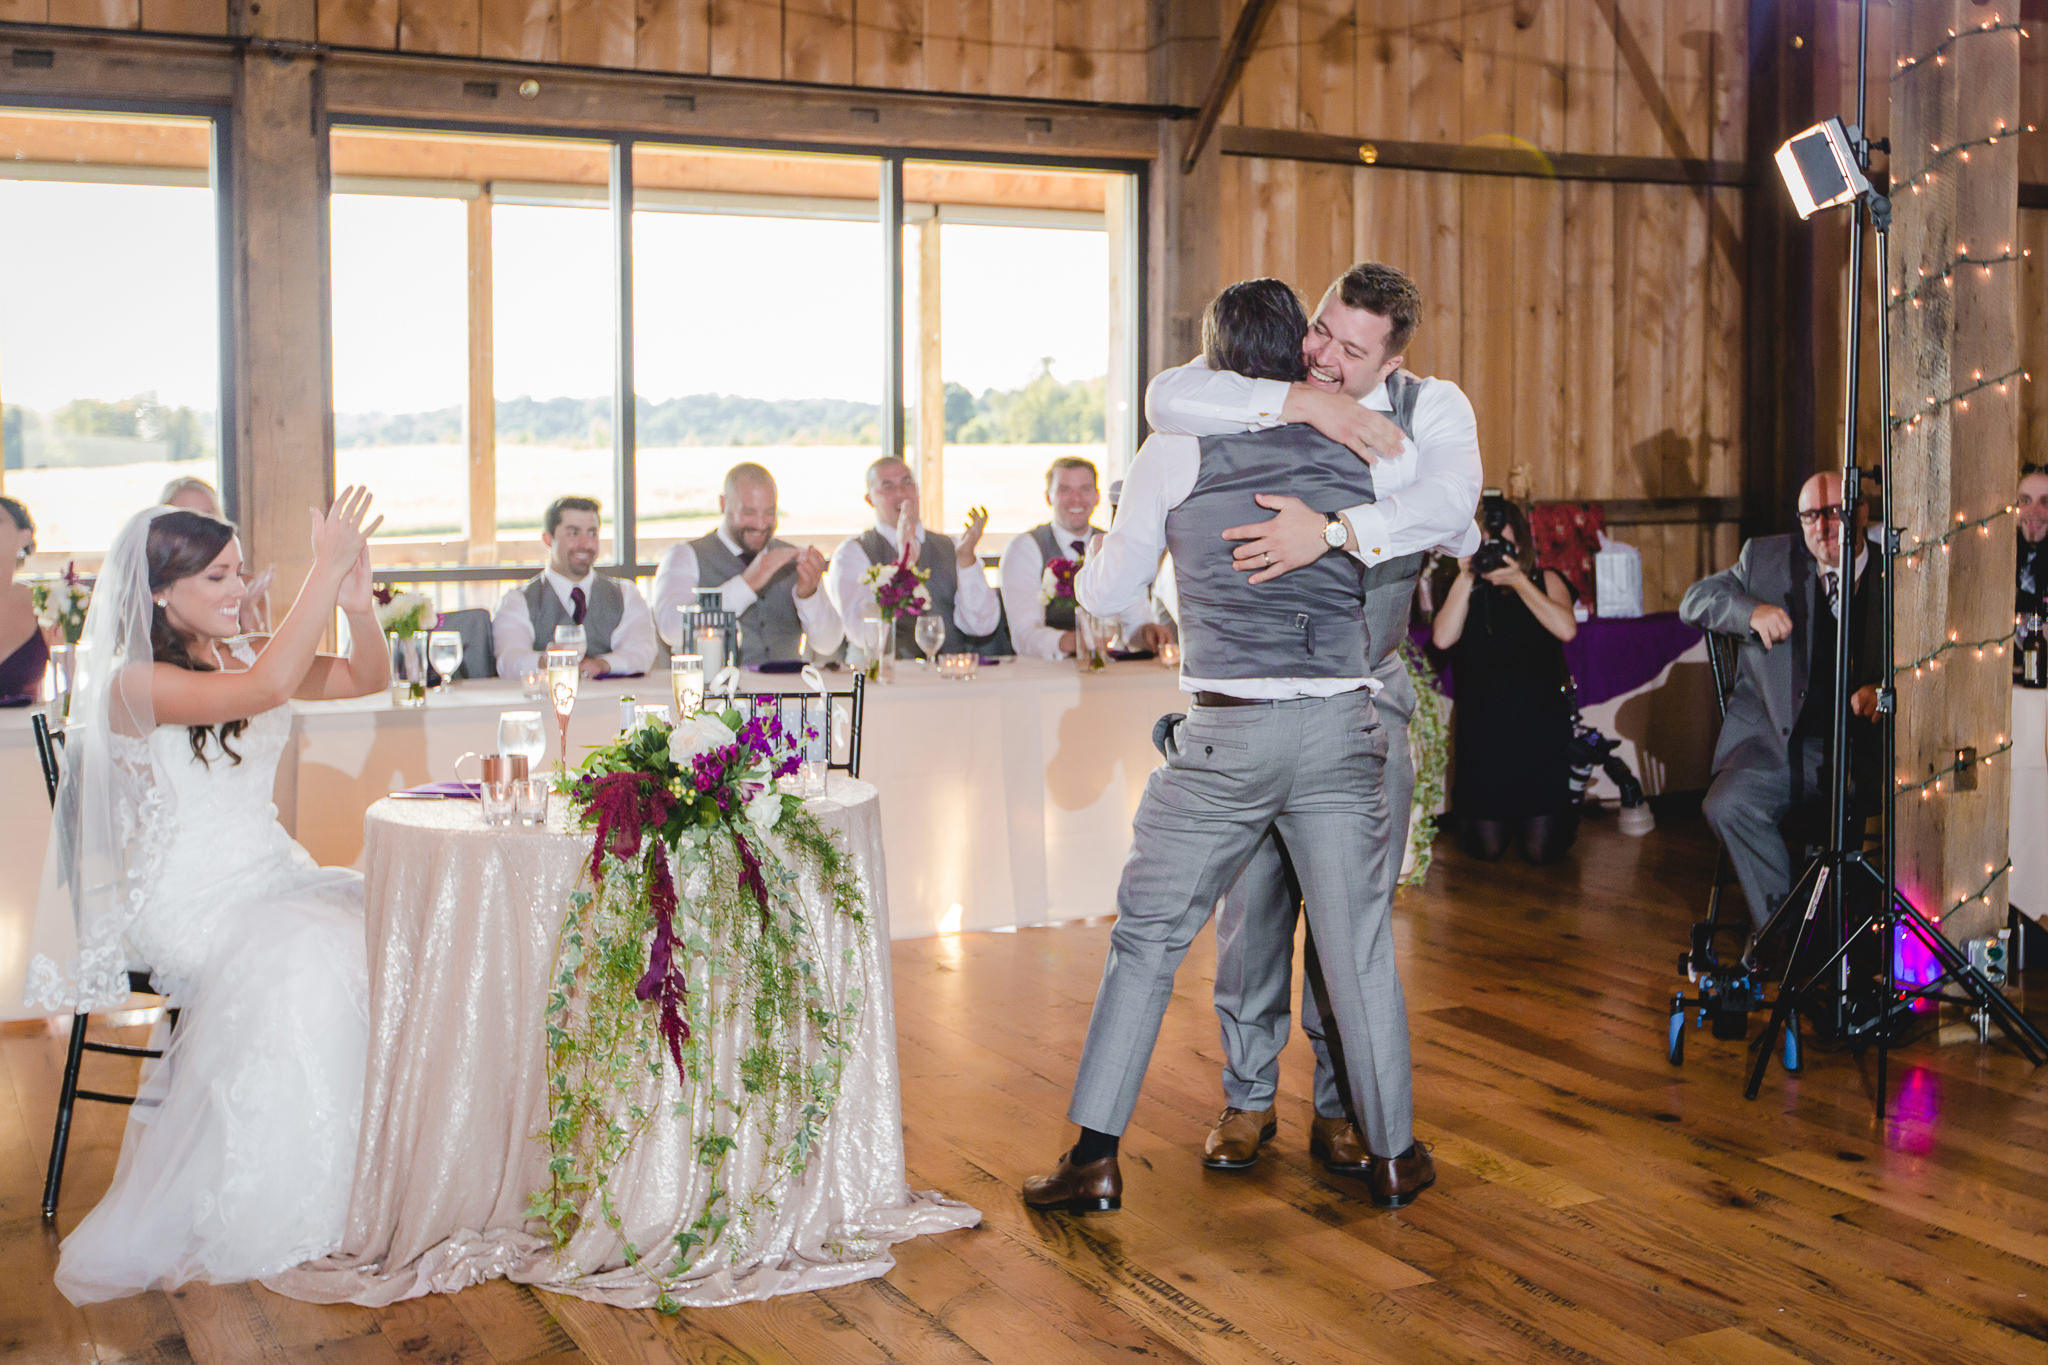 Groom hugs his best man at White Barn wedding reception